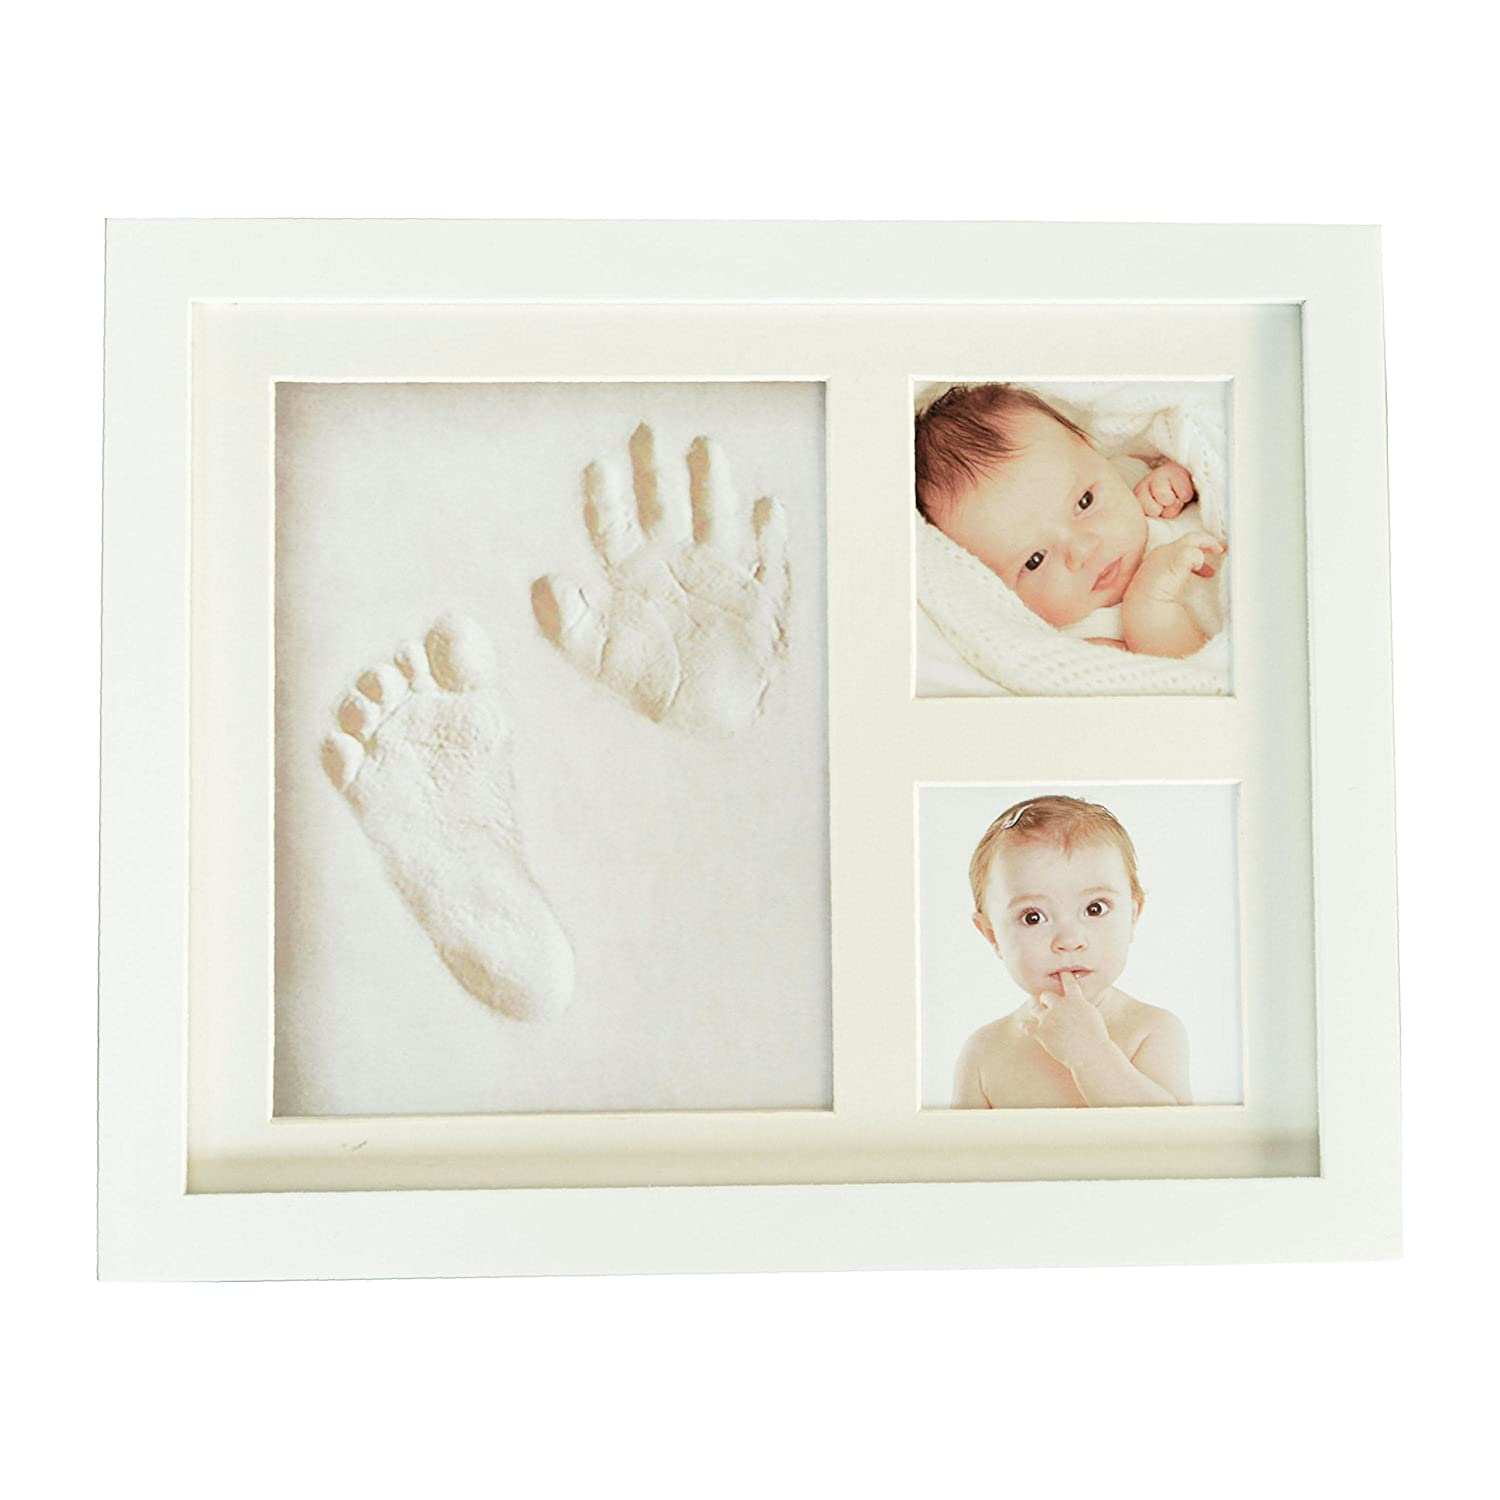 MemoriesNest Baby Handprint Kit Keepsake - Photo Frame Album for a Newborn's Hand and Footprint - A Personalised New Gift Box for a Baby boy/Girl Shower Registry - Nursery Wall Decoration